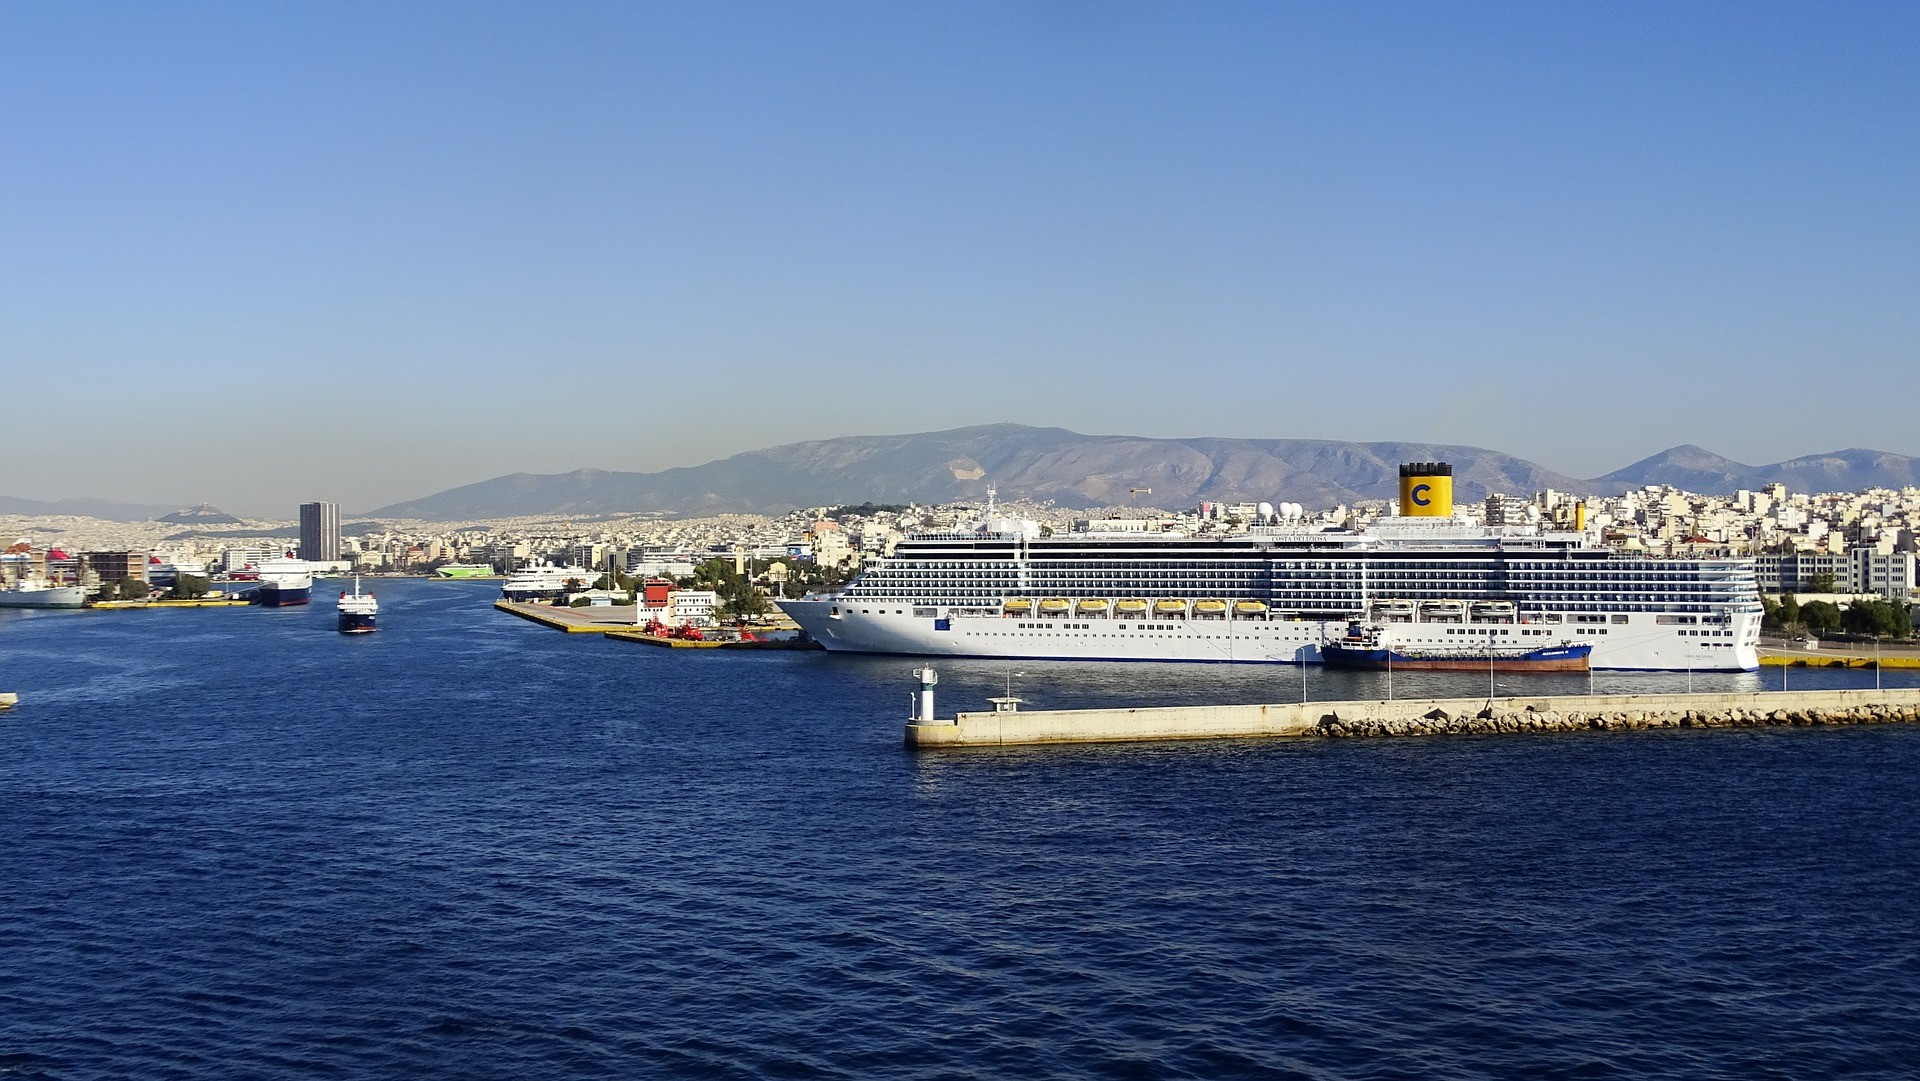 Greece. Piraeus is the largest passenger port in Europe